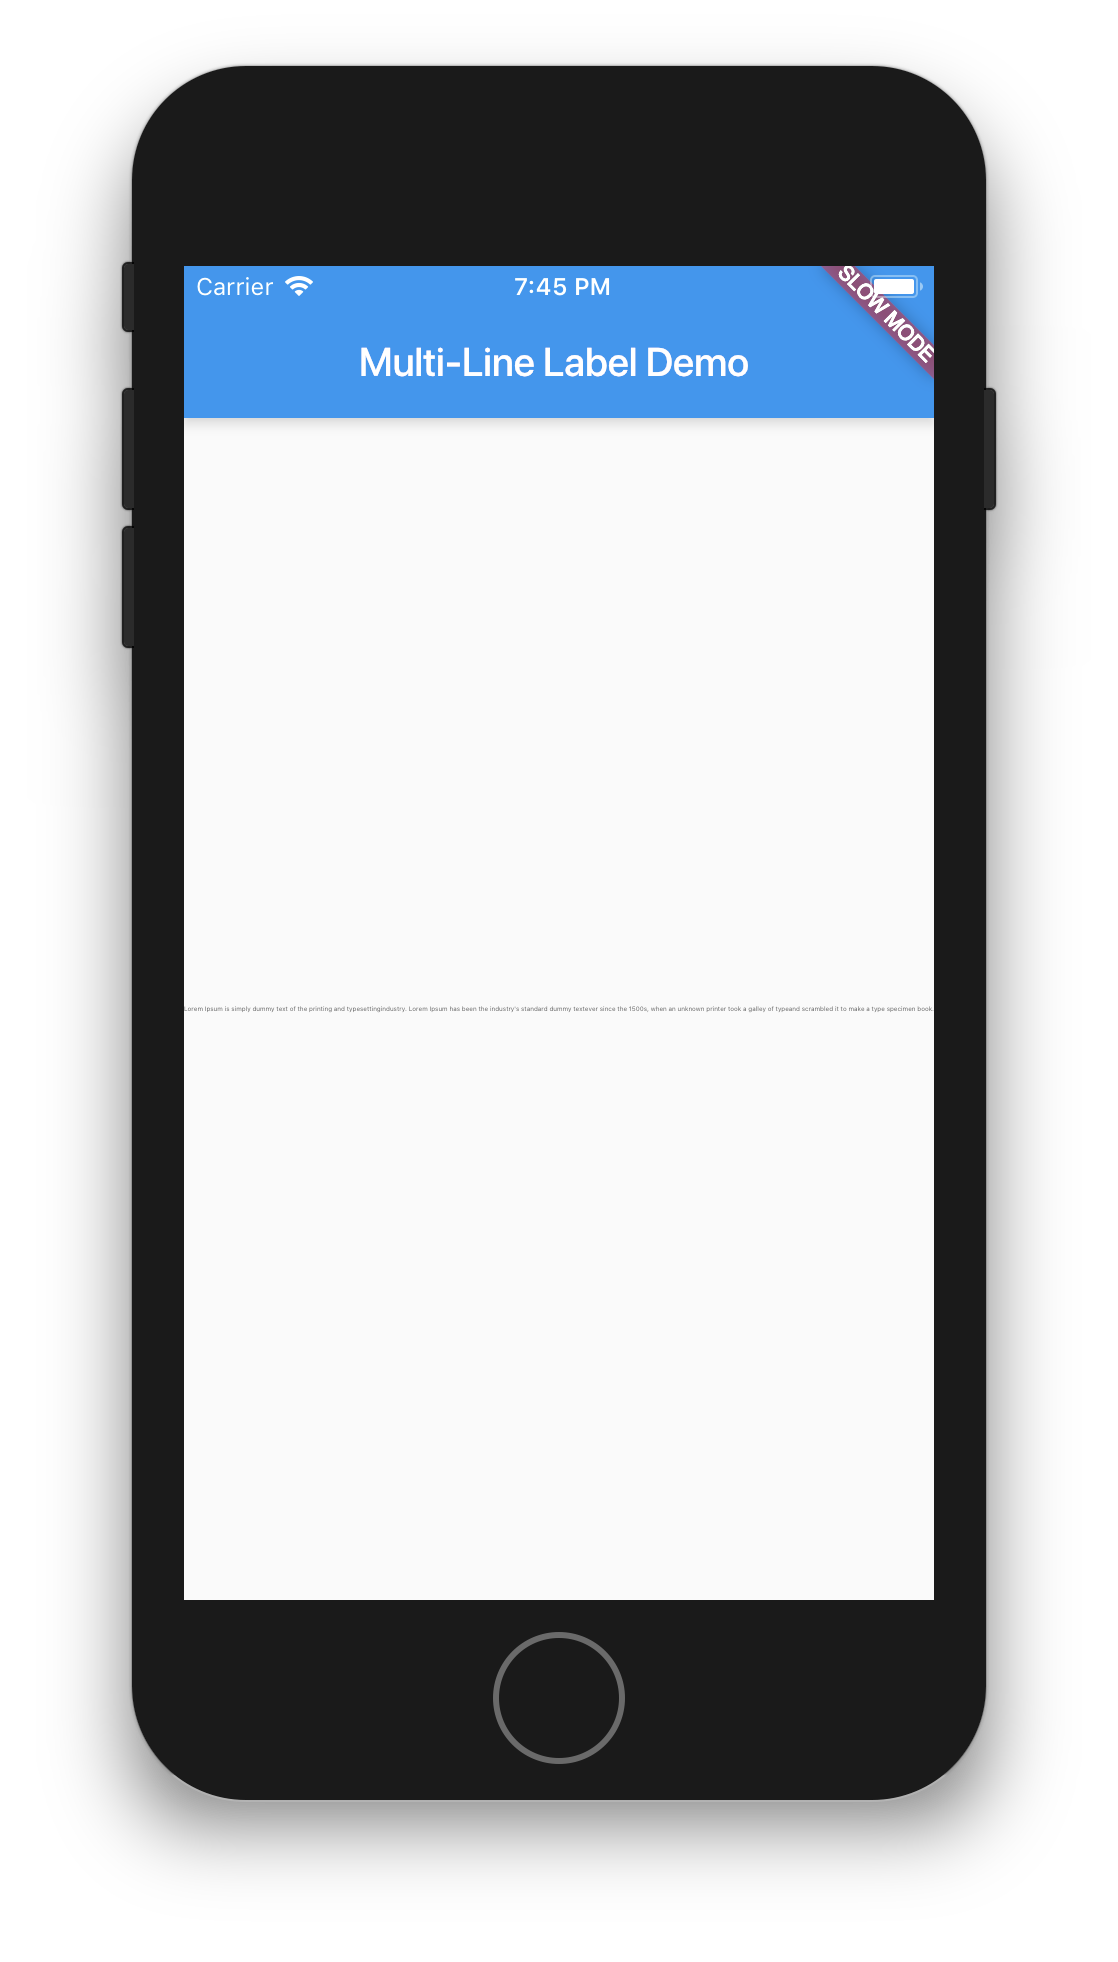 How to shrink image to fit png. Do i auto scale